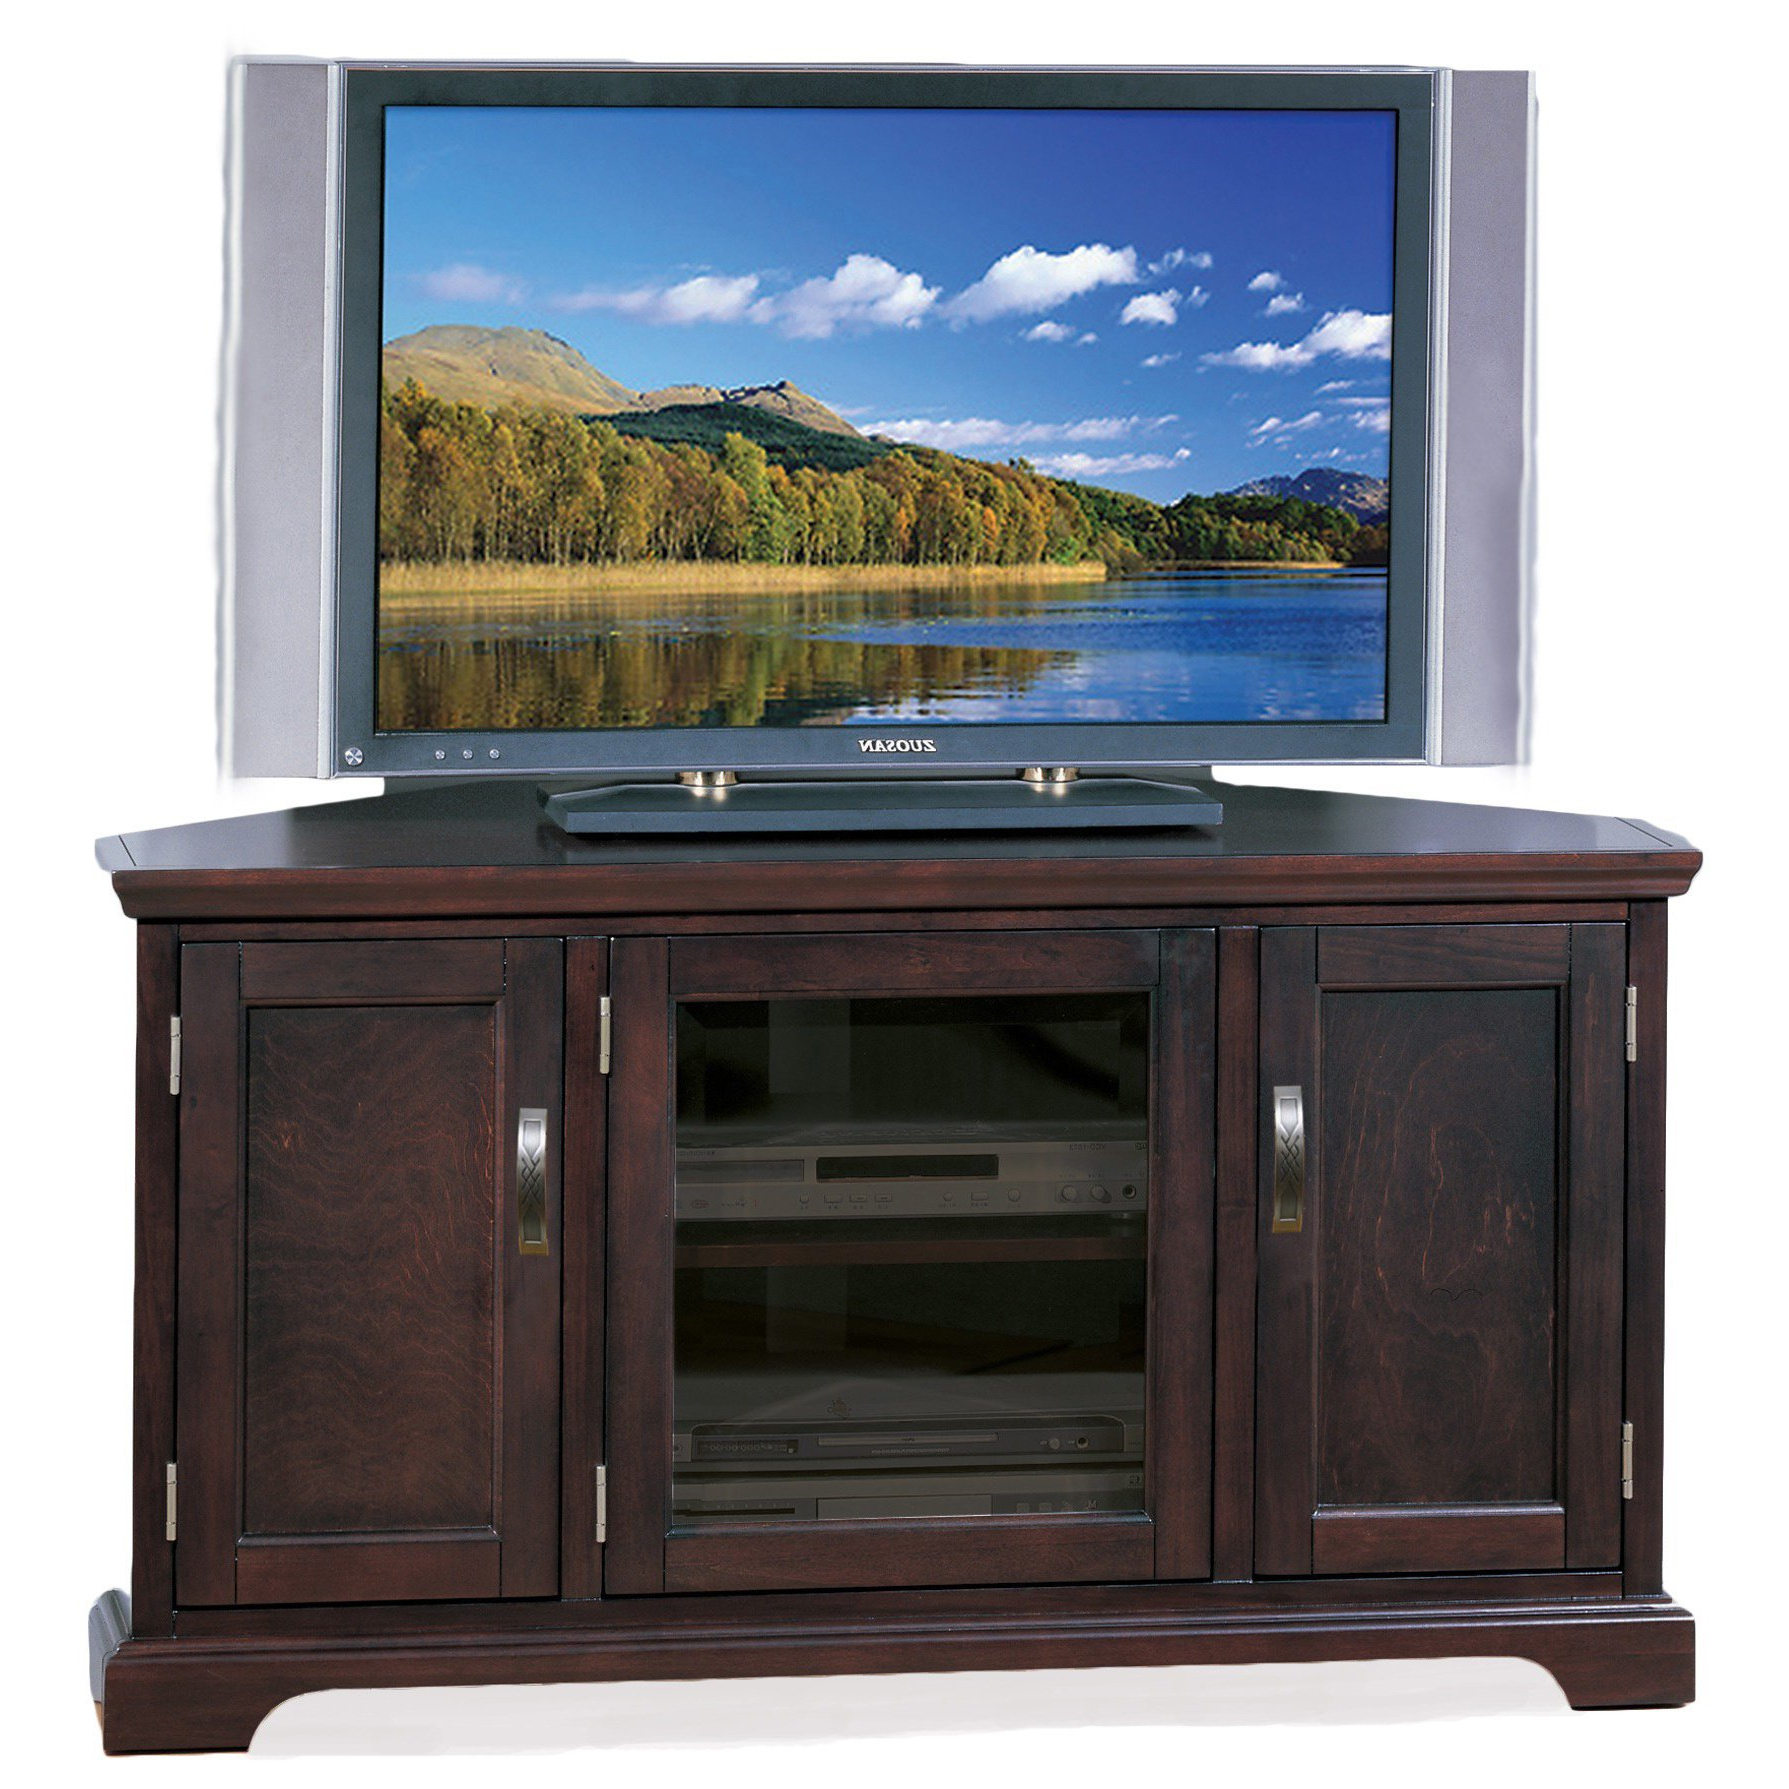 Shop Kd Furnishings Chocolate Bronze 46 Inch Corner Tv Stand & Media Intended For Well Liked Corner Tv Stands For 46 Inch Flat Screen (View 12 of 20)